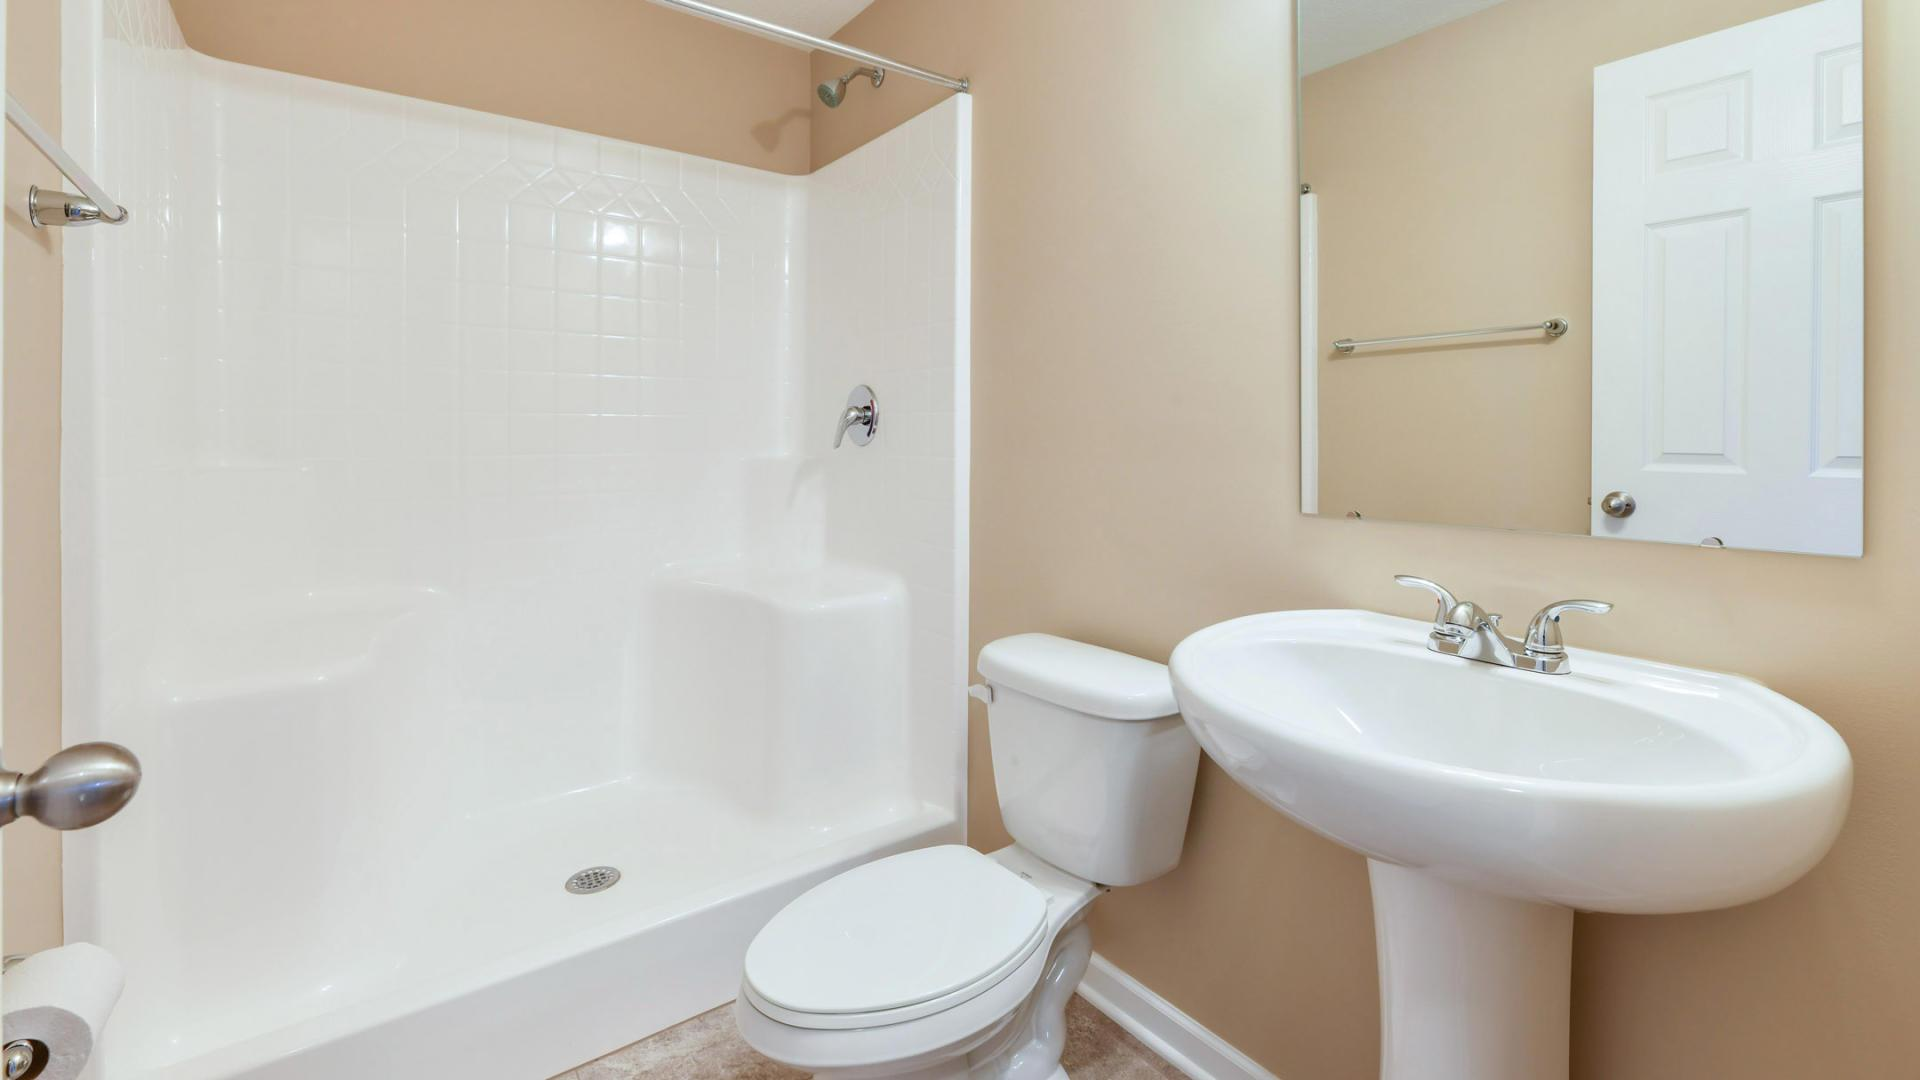 Bathroom featured in the Rockford By Maronda Homes in Pittsburgh, PA